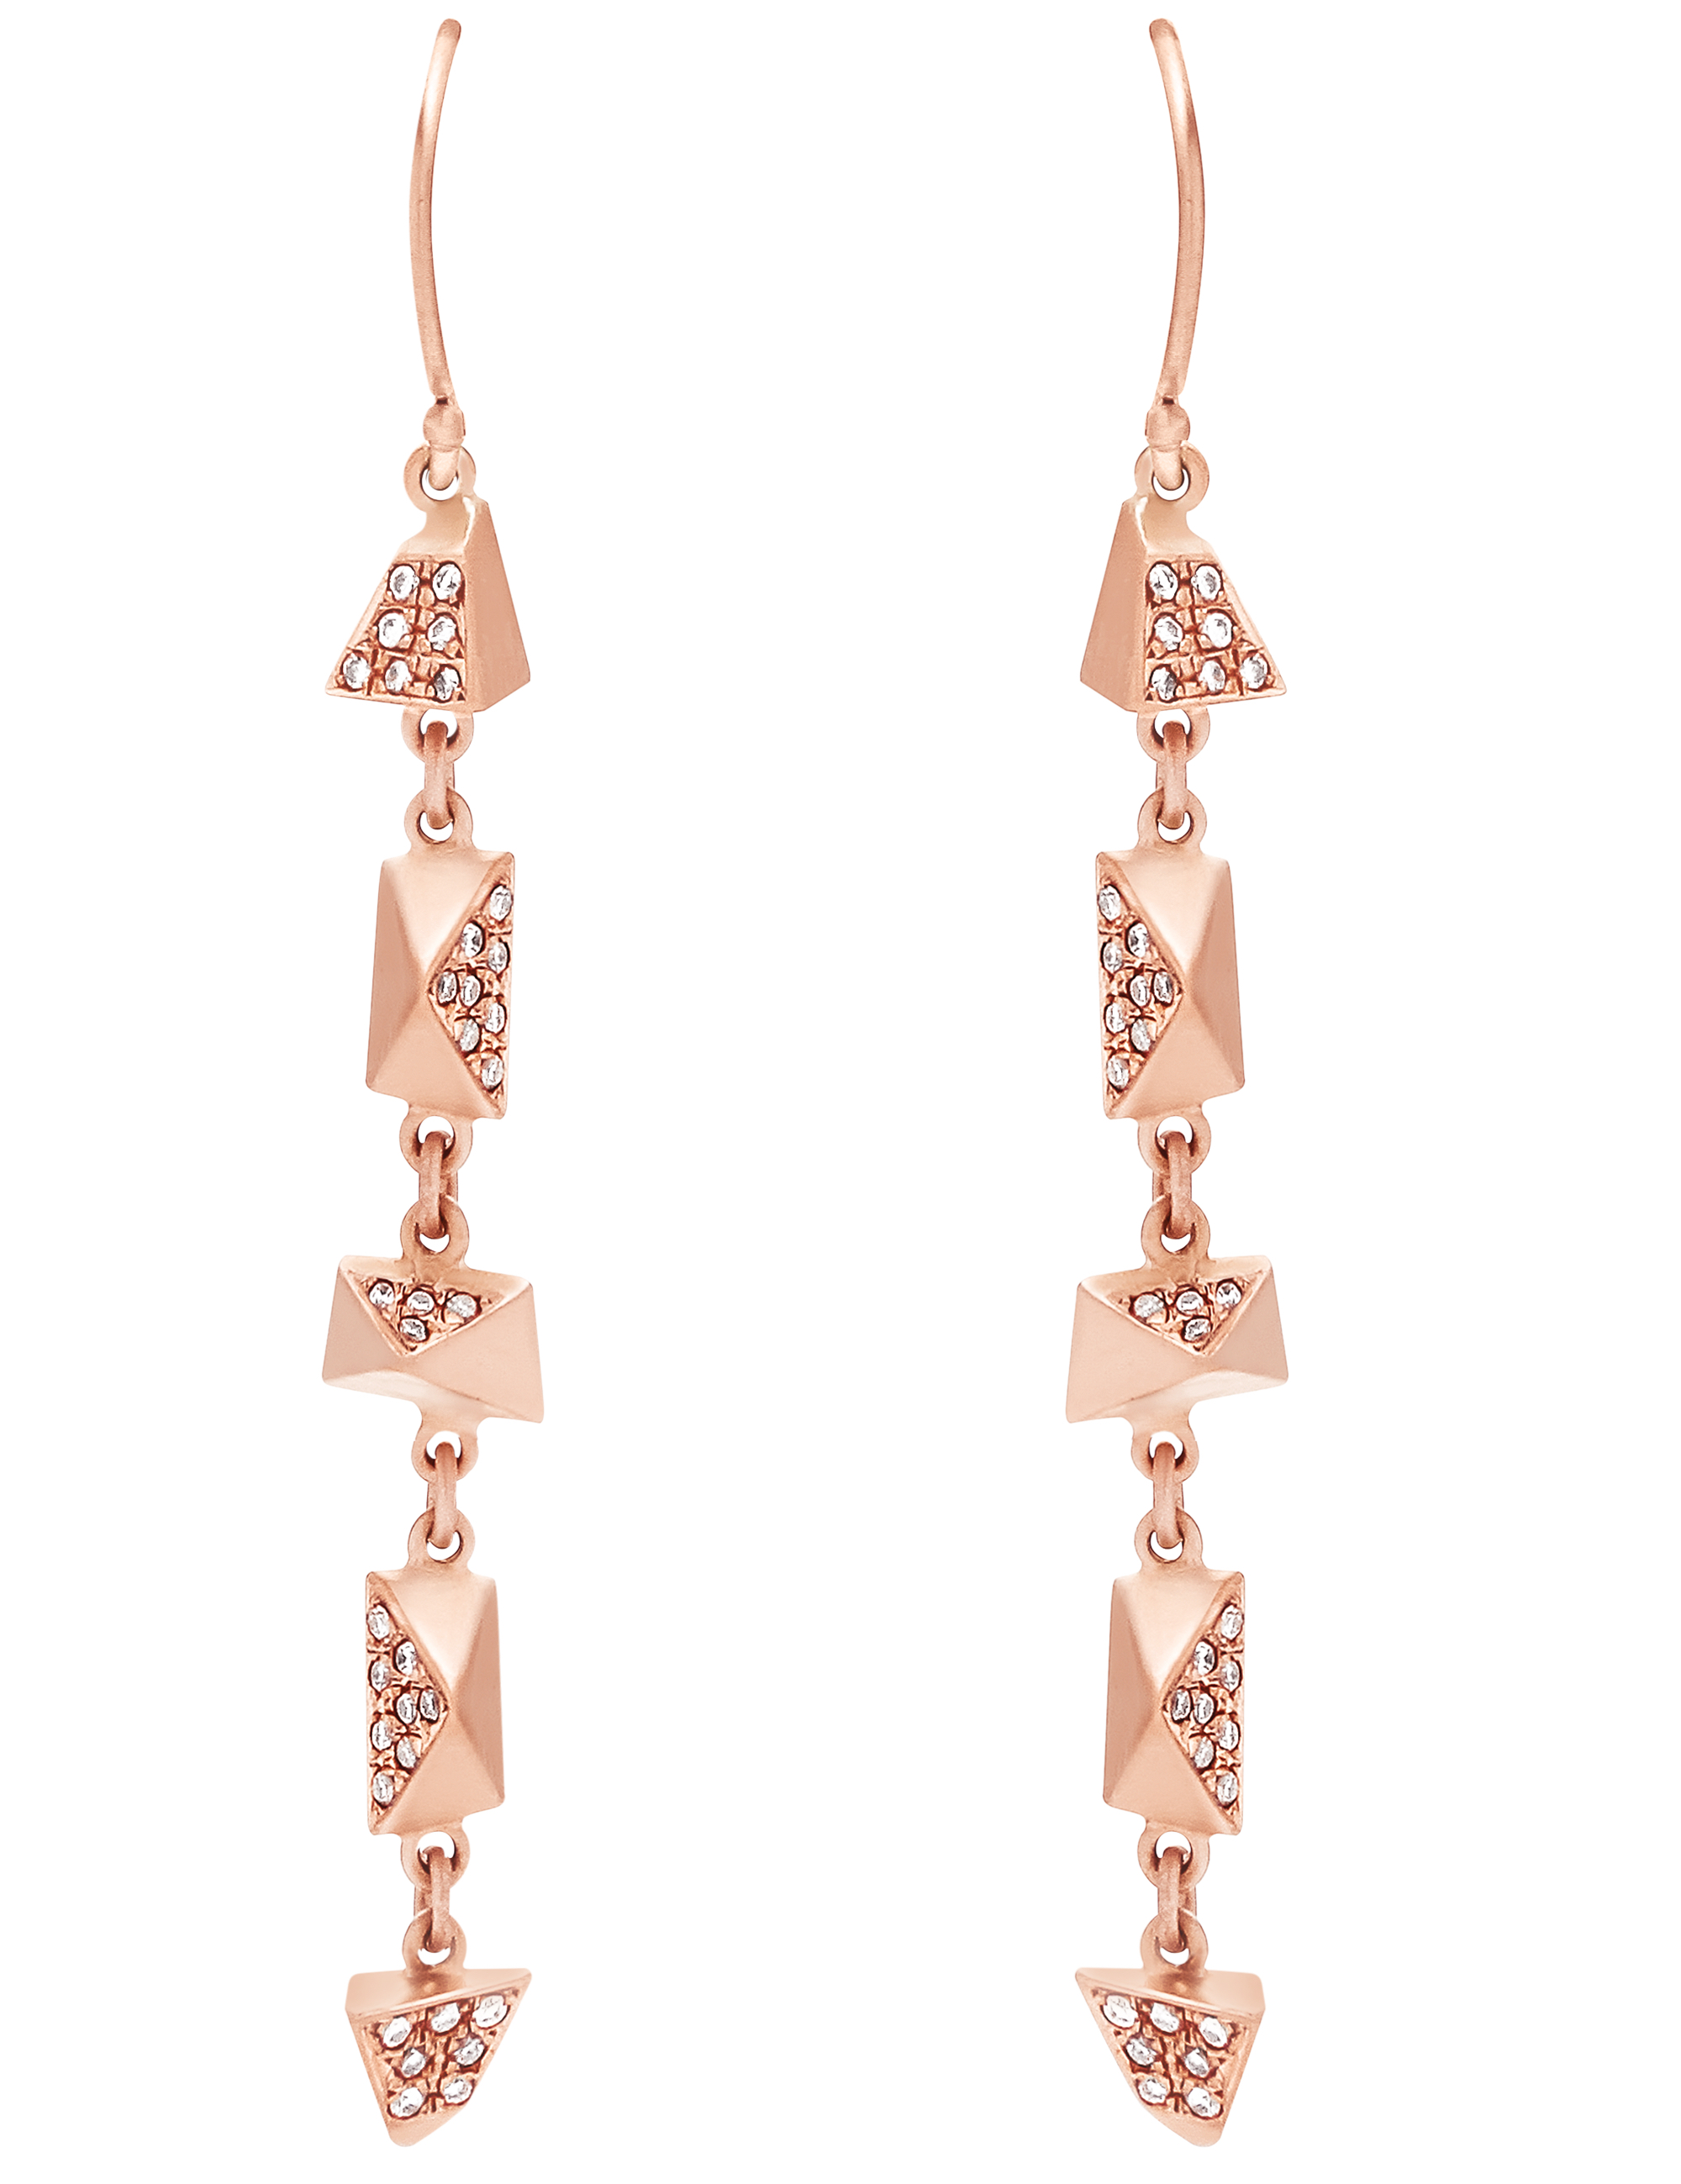 Dana Bronfman 5 Pi and Tri drop earrings | JCK On Your Market